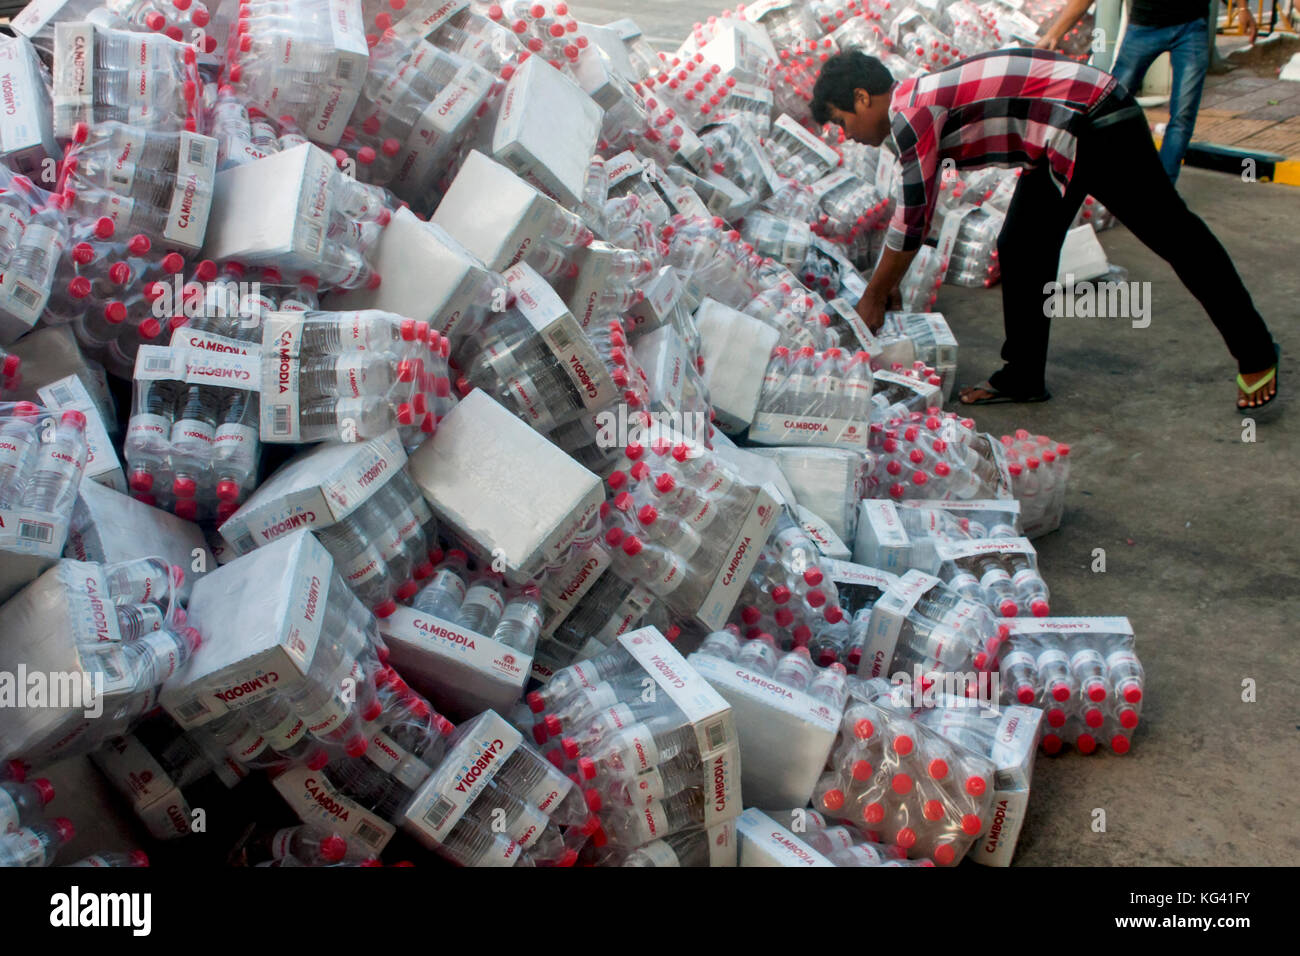 Men are moving cases of plastic purified water bottles on a city street in Phnom Penh, Cambodia. - Stock Image